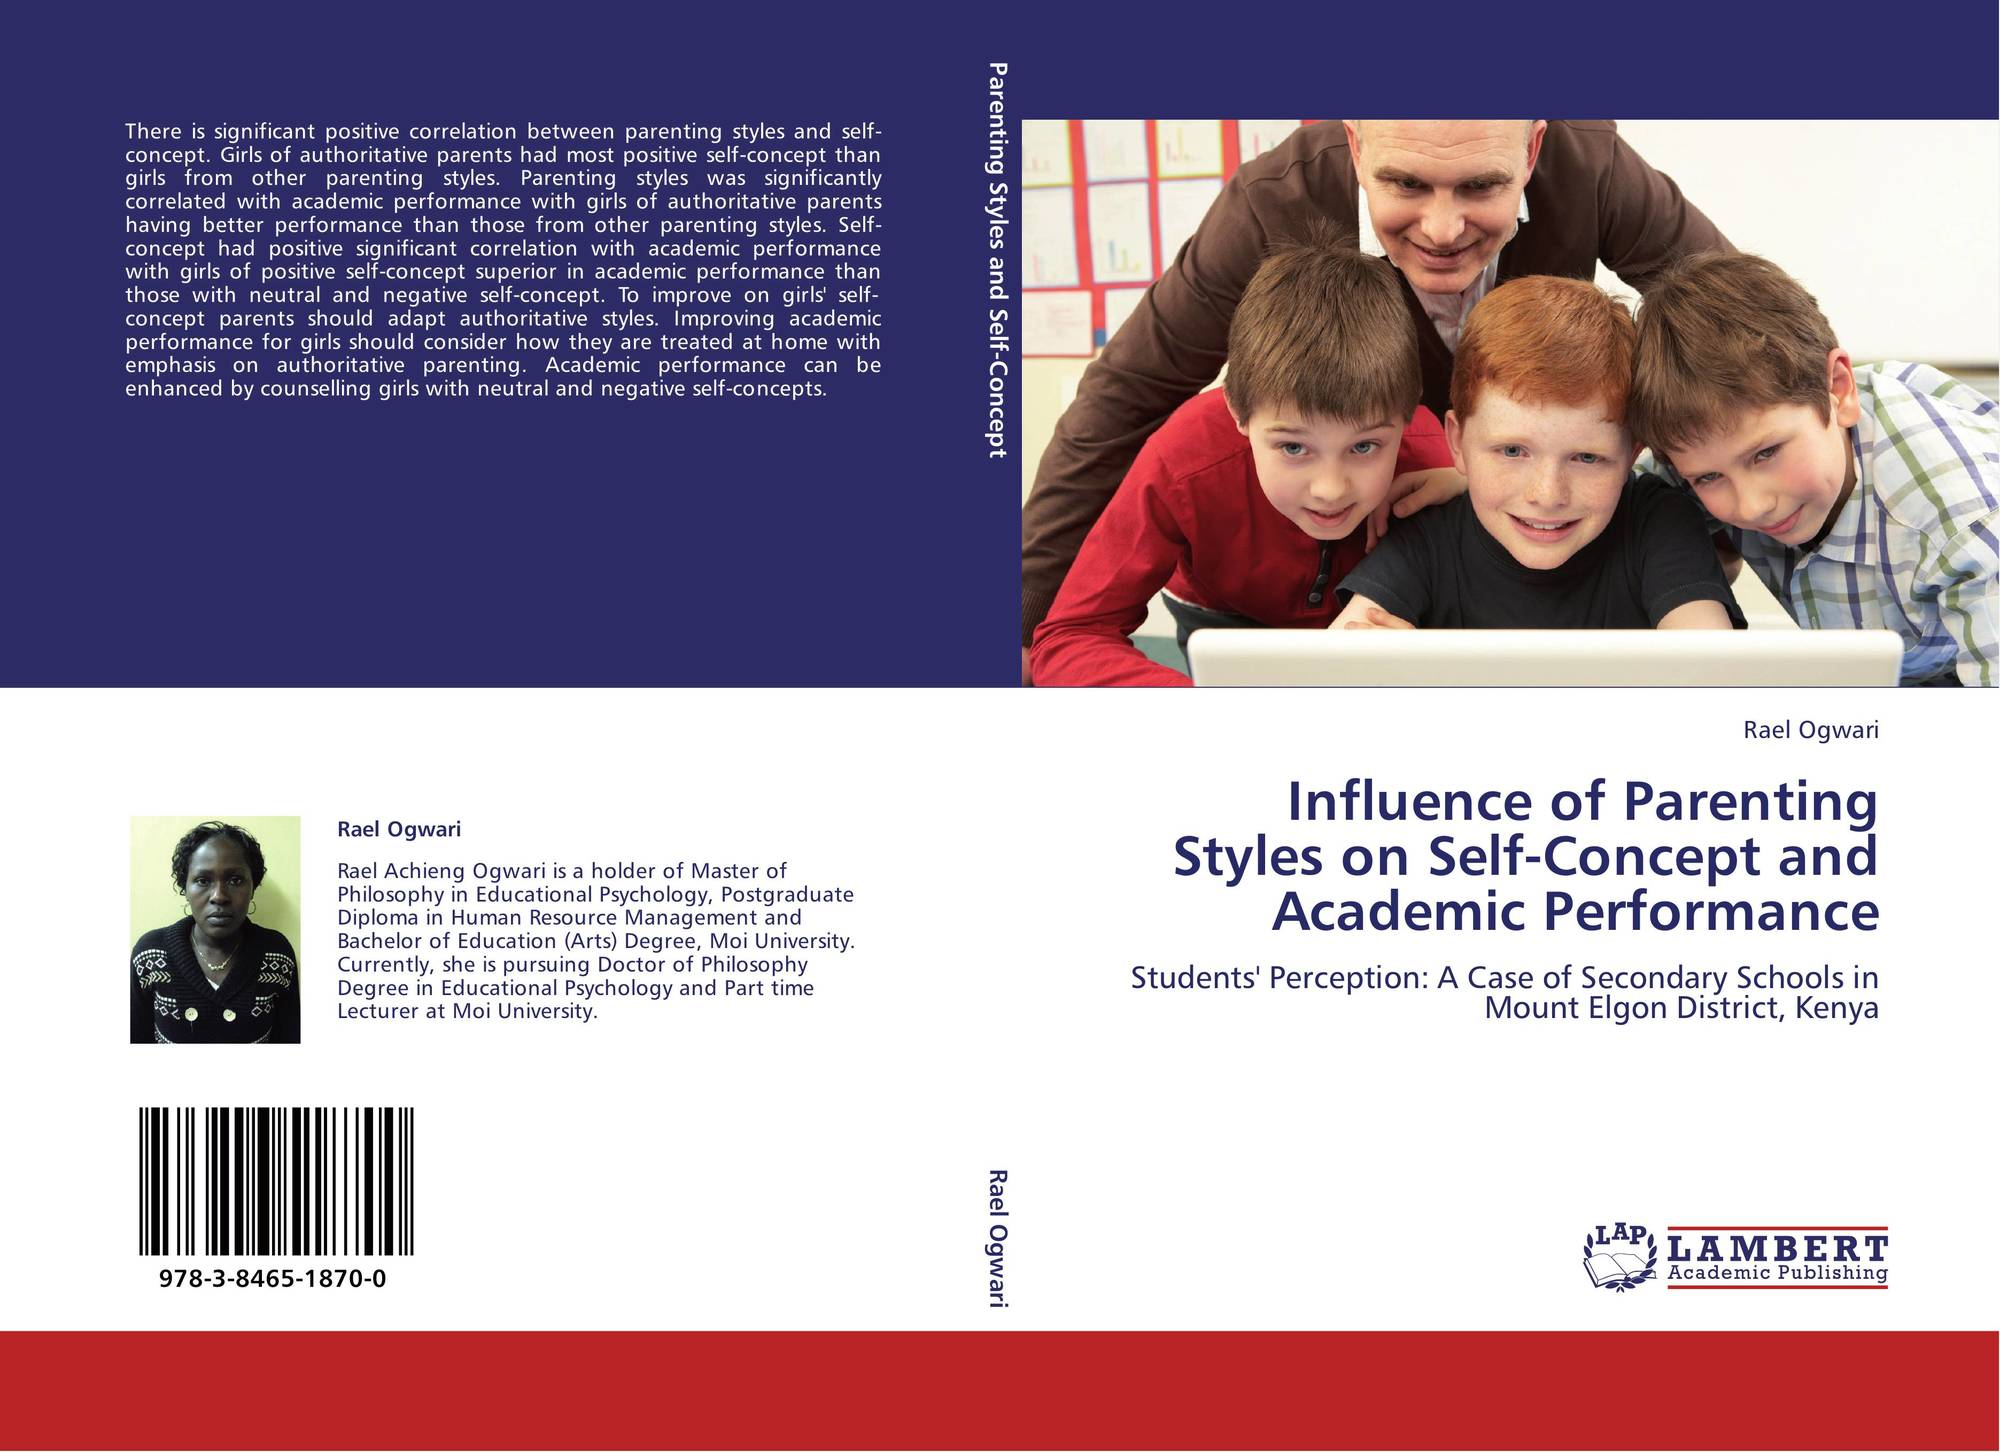 parenting and academic performance Using the paired sample t test, it shows that there is significance difference in the parenting styles of preschool parents to their academic performance preschool children in st mary's academy of iloilo city, inc.